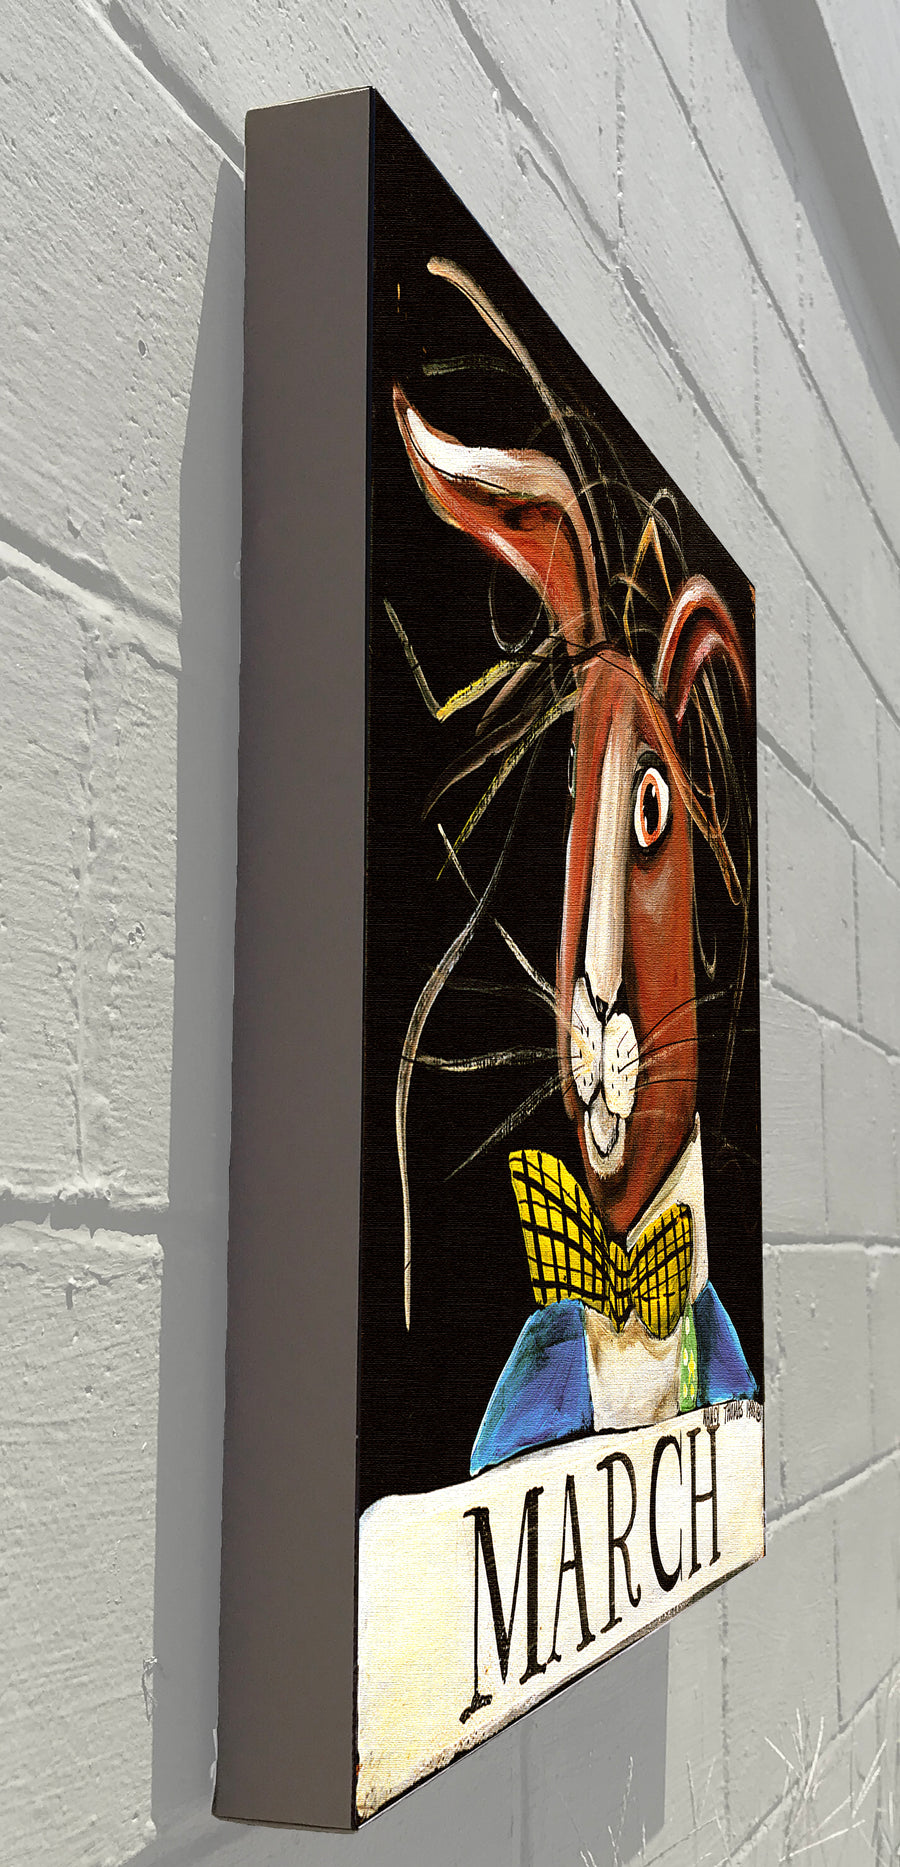 Gallery Canvas - March Hare - Original Month Series